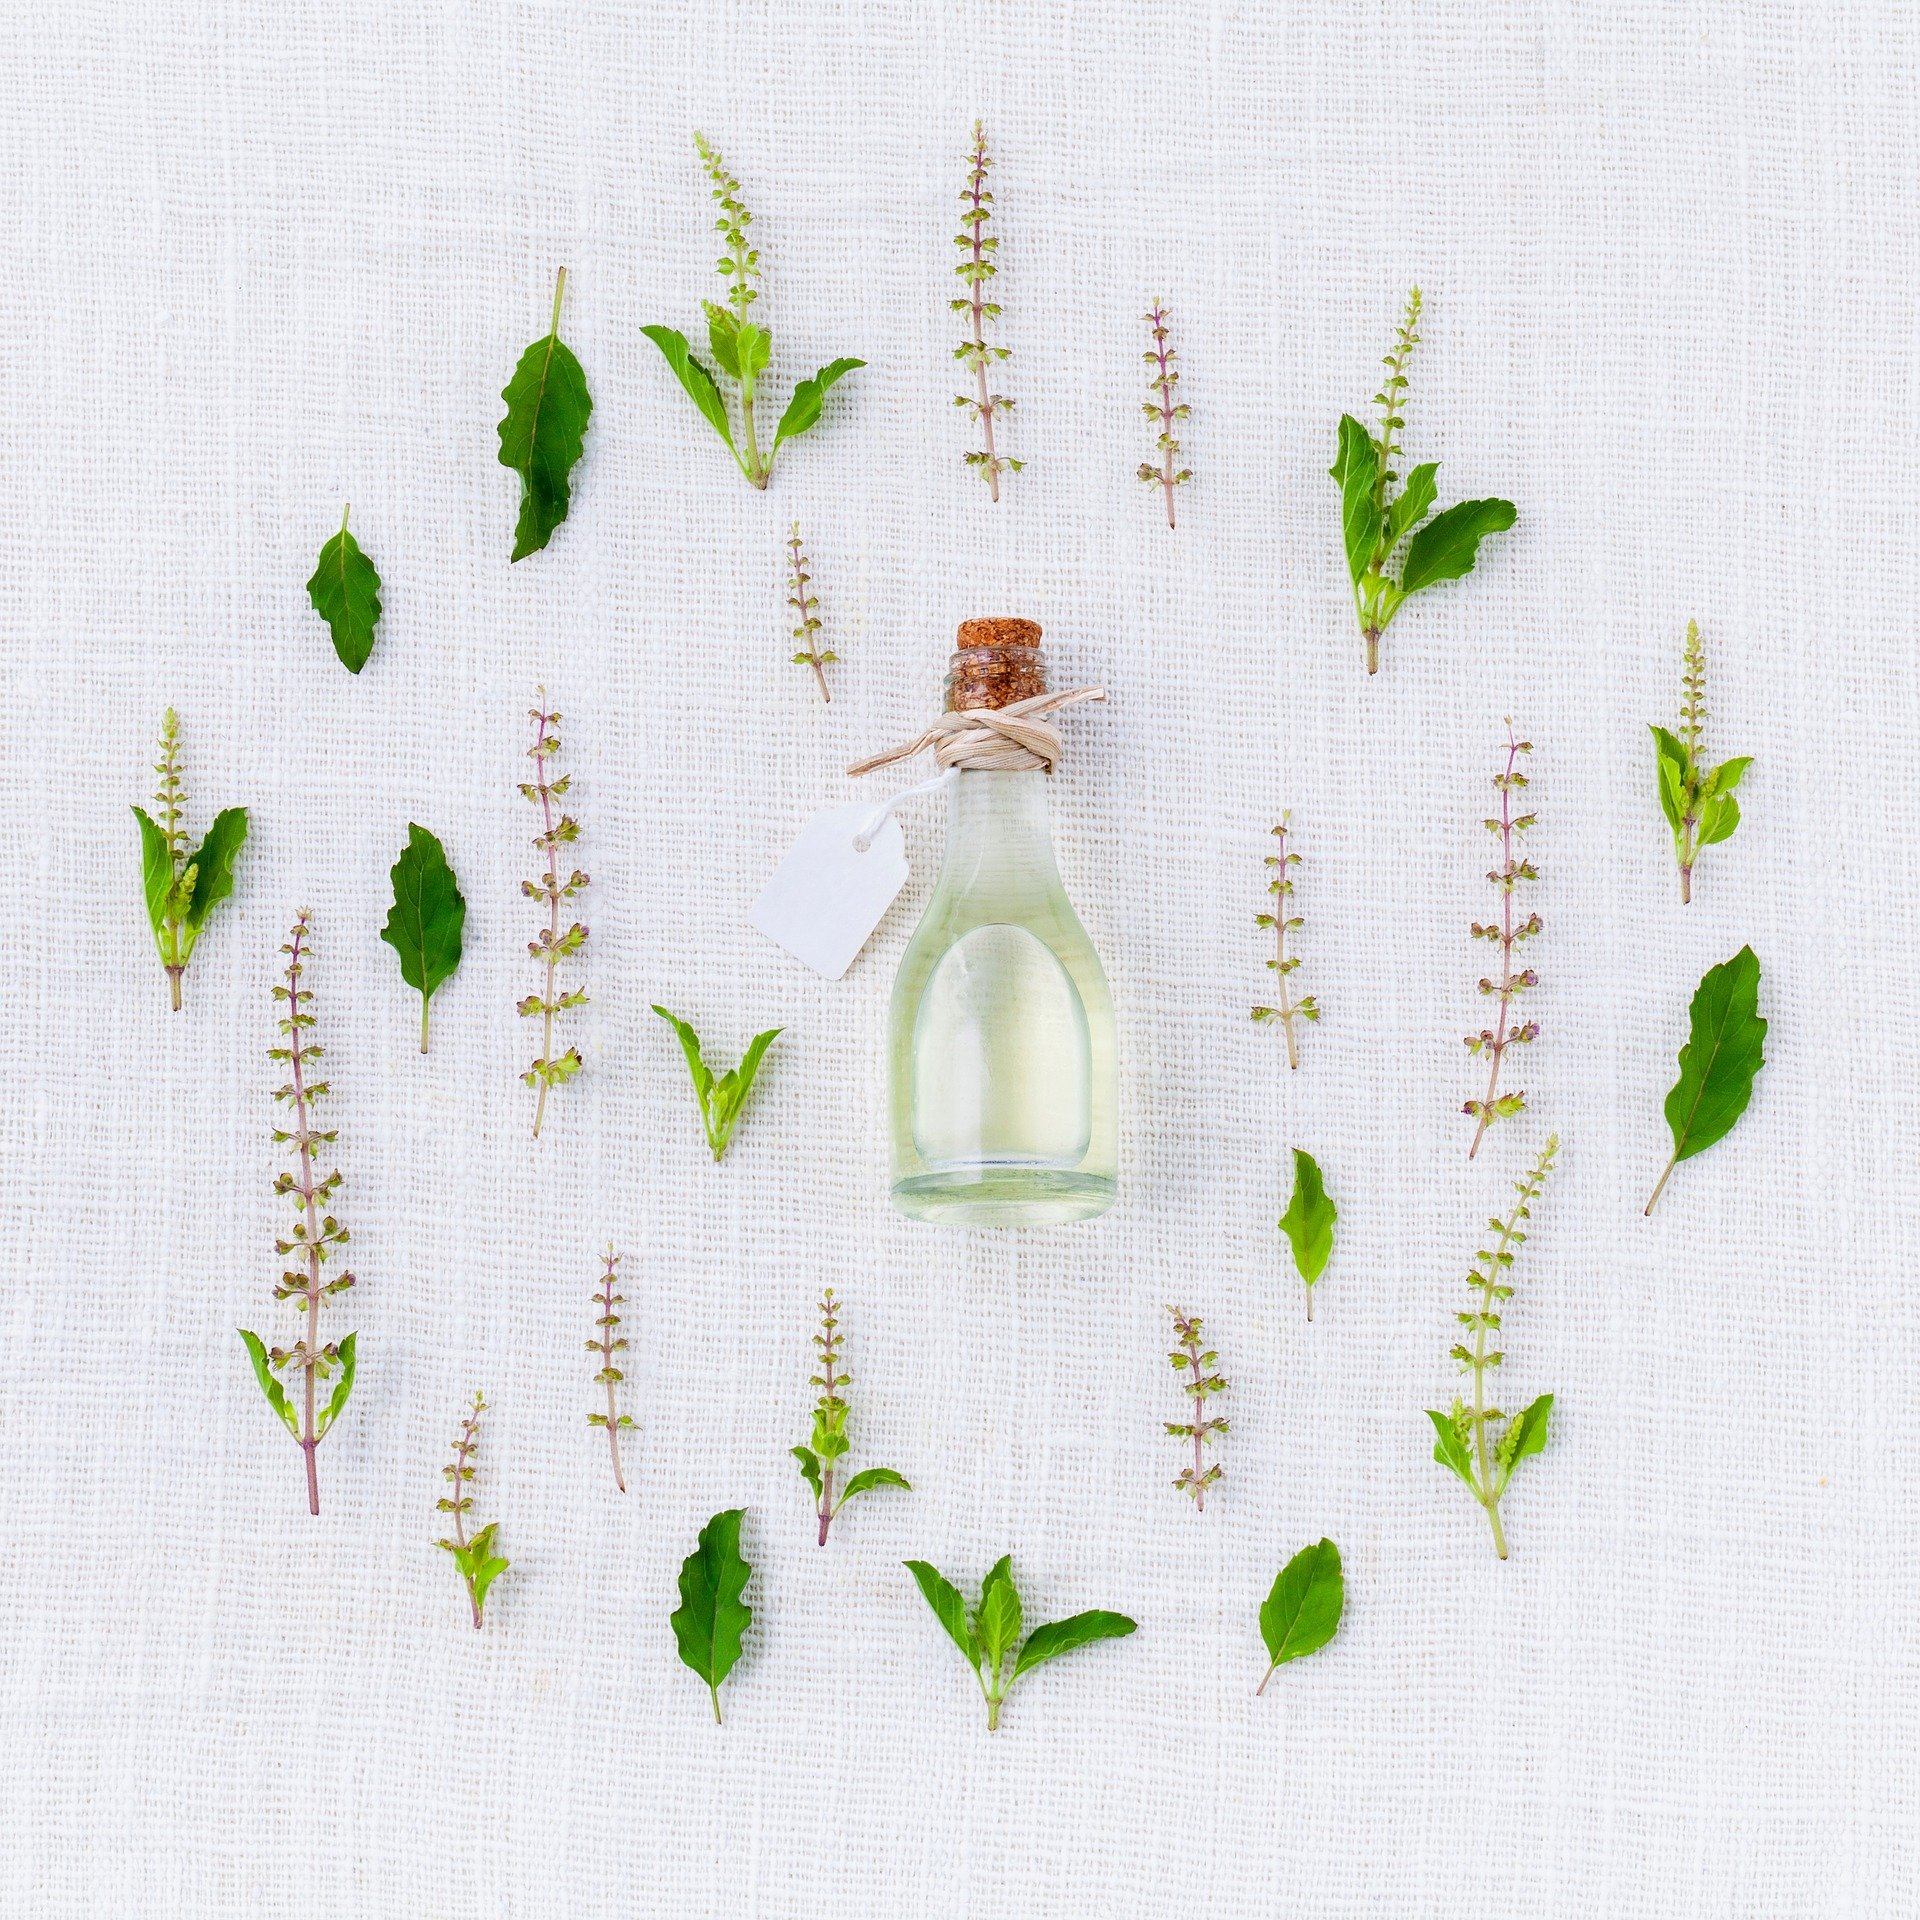 Healing with herbs- botanical medicines